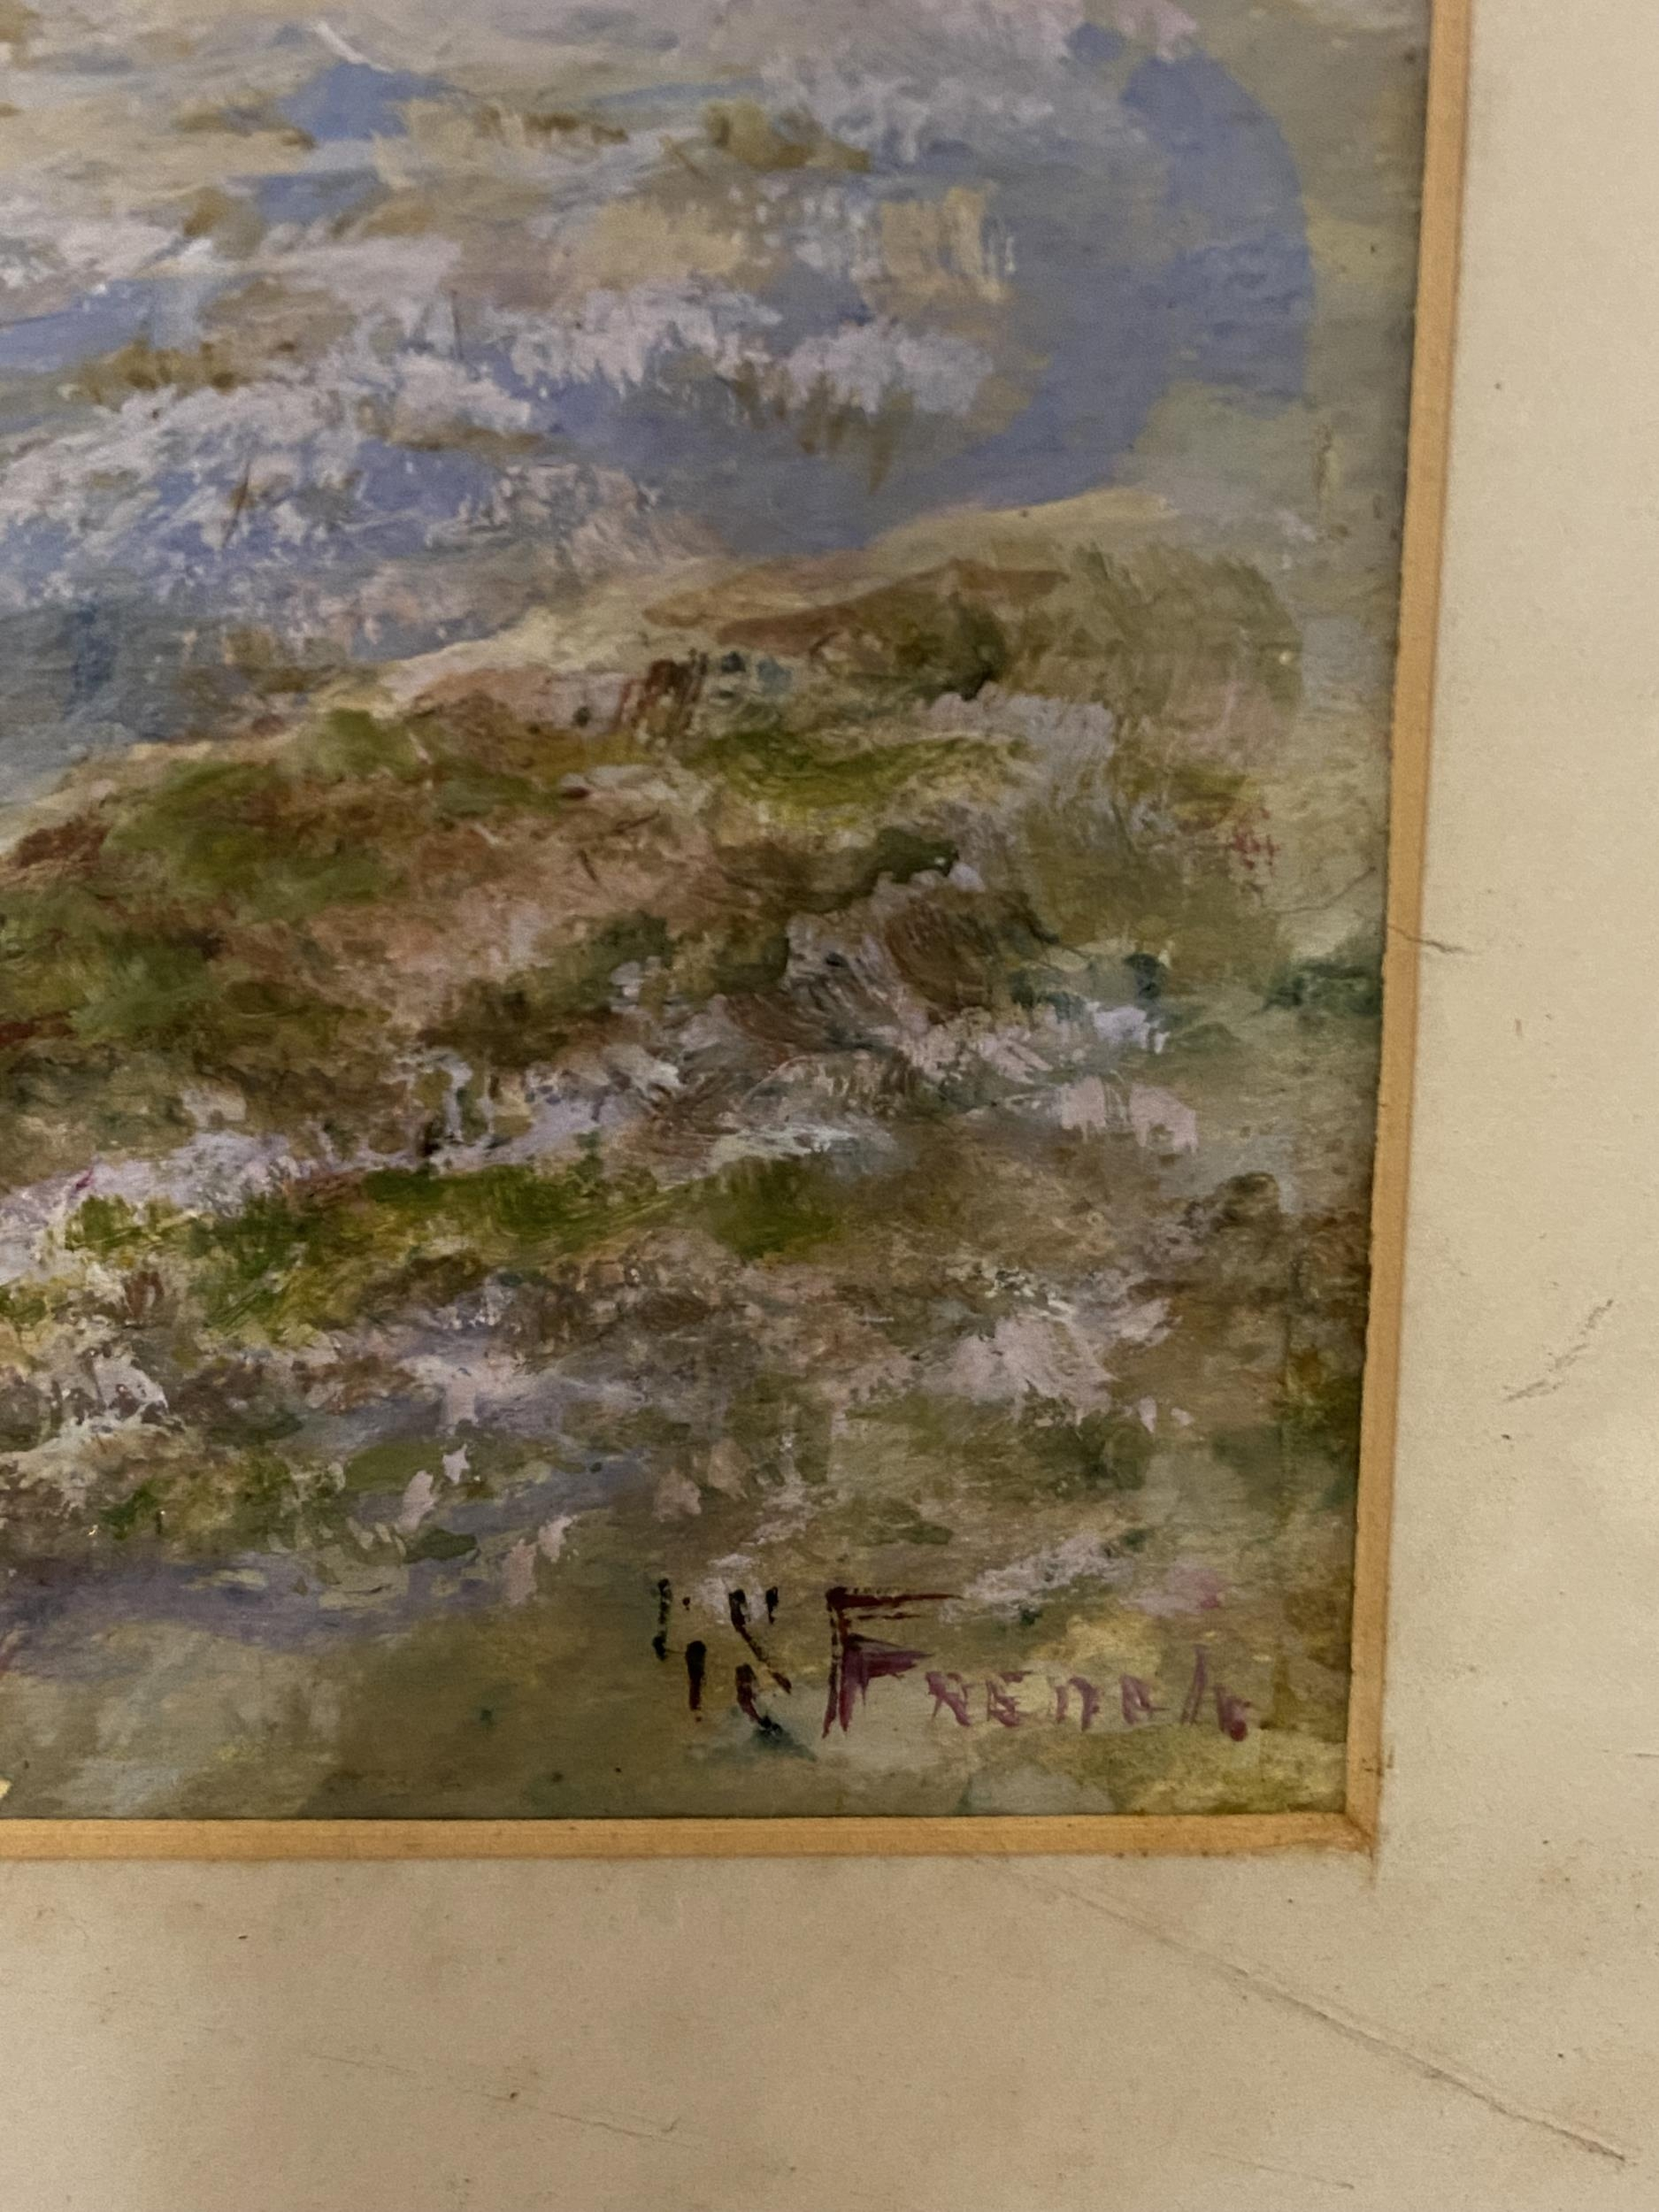 Antique original watercolour depicting sheep in a valley scene. Signed by the artist [Unreadable] [ - Image 2 of 6